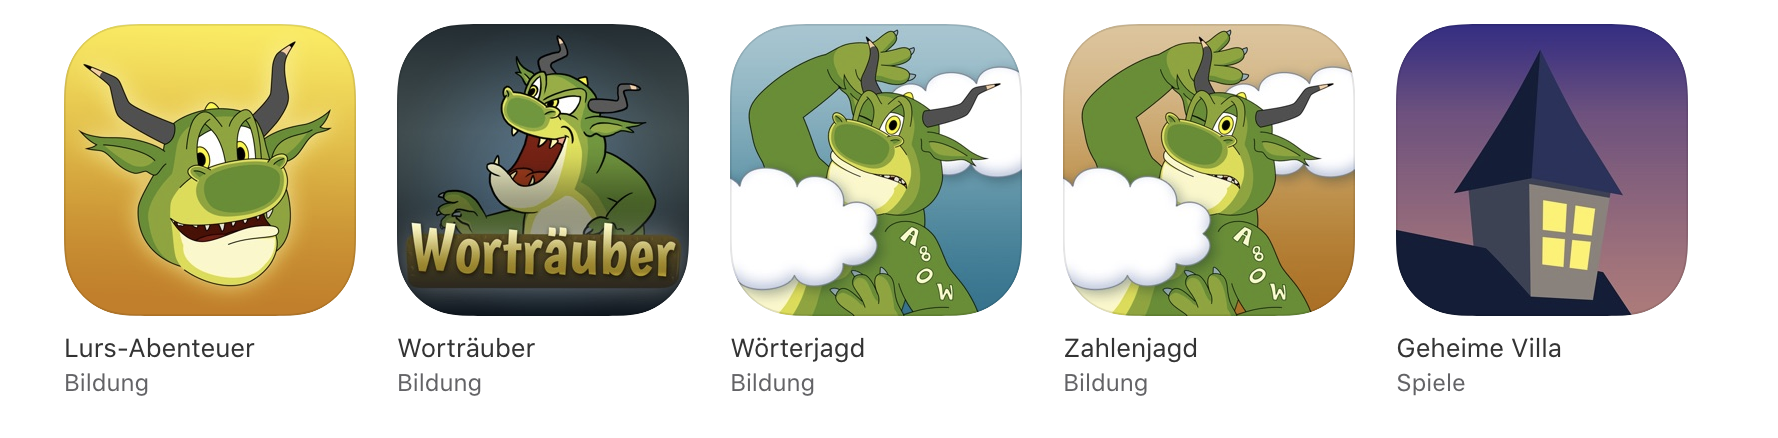 Alle LegaKids-Apps